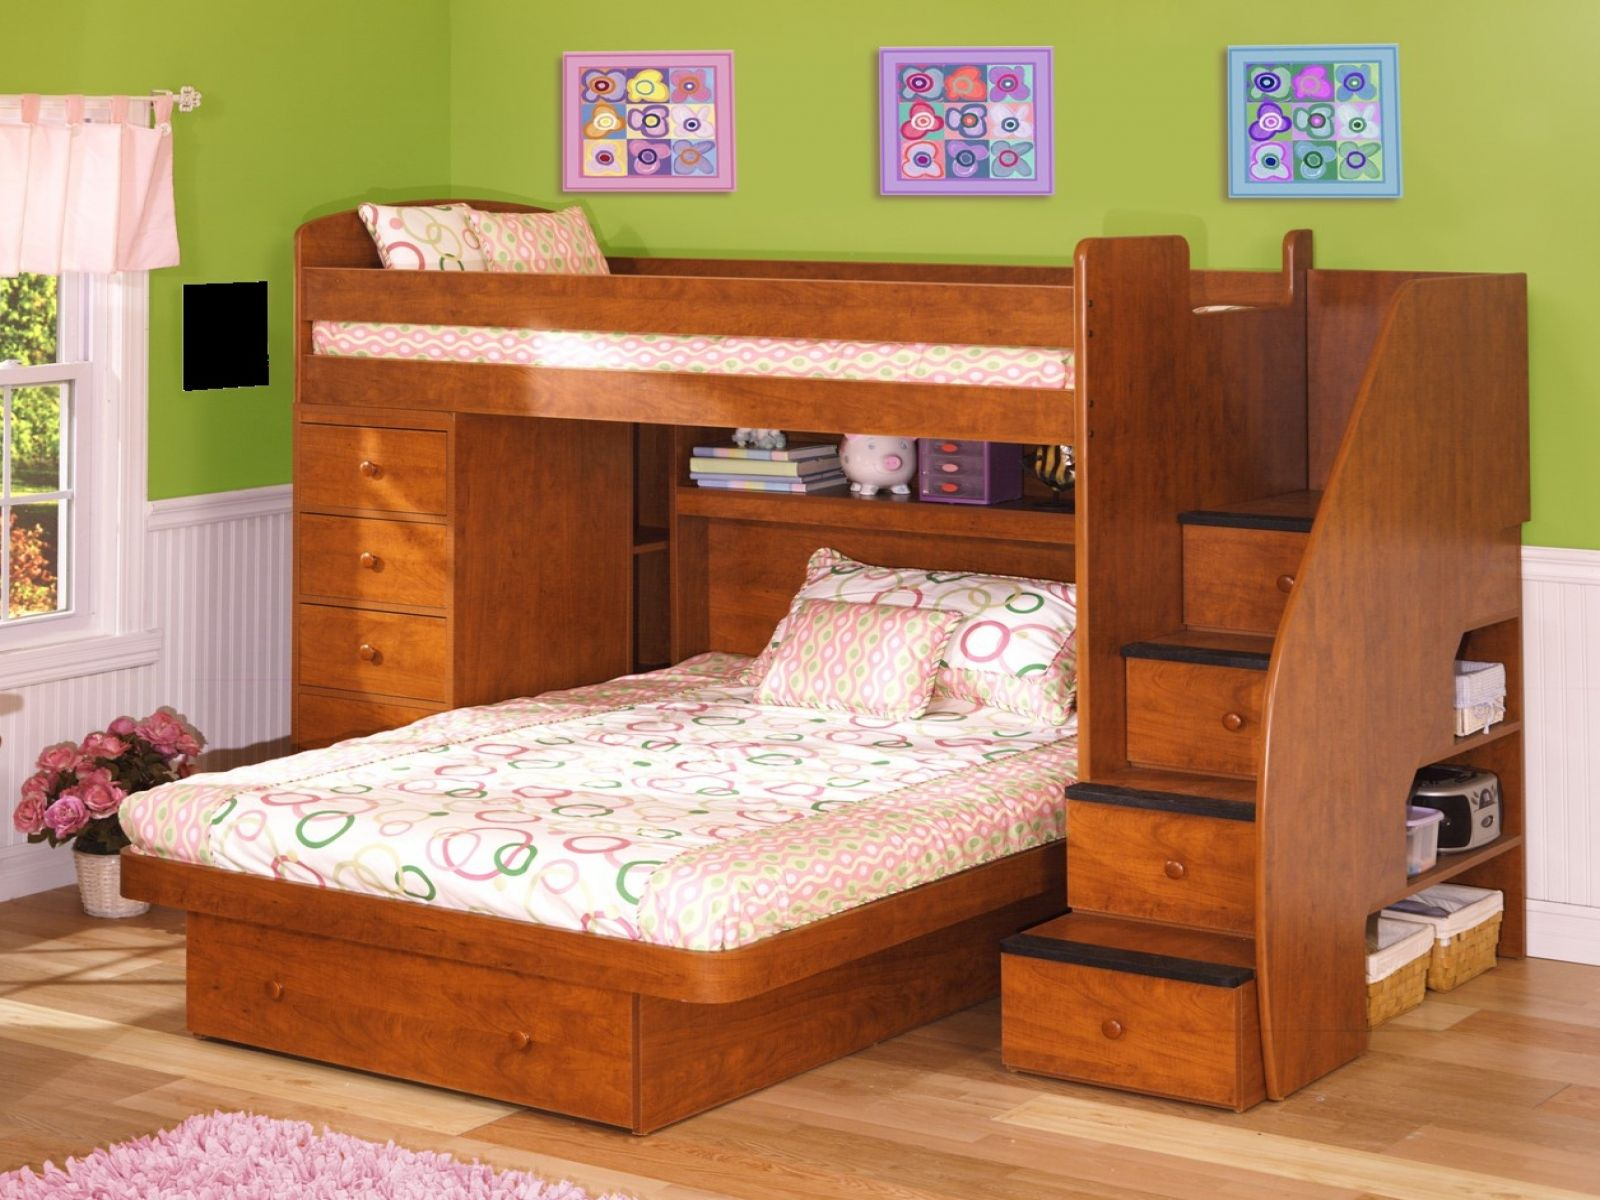 Space Saver Beds For Kids furniture, l shaped loft beds level small space bed children beds